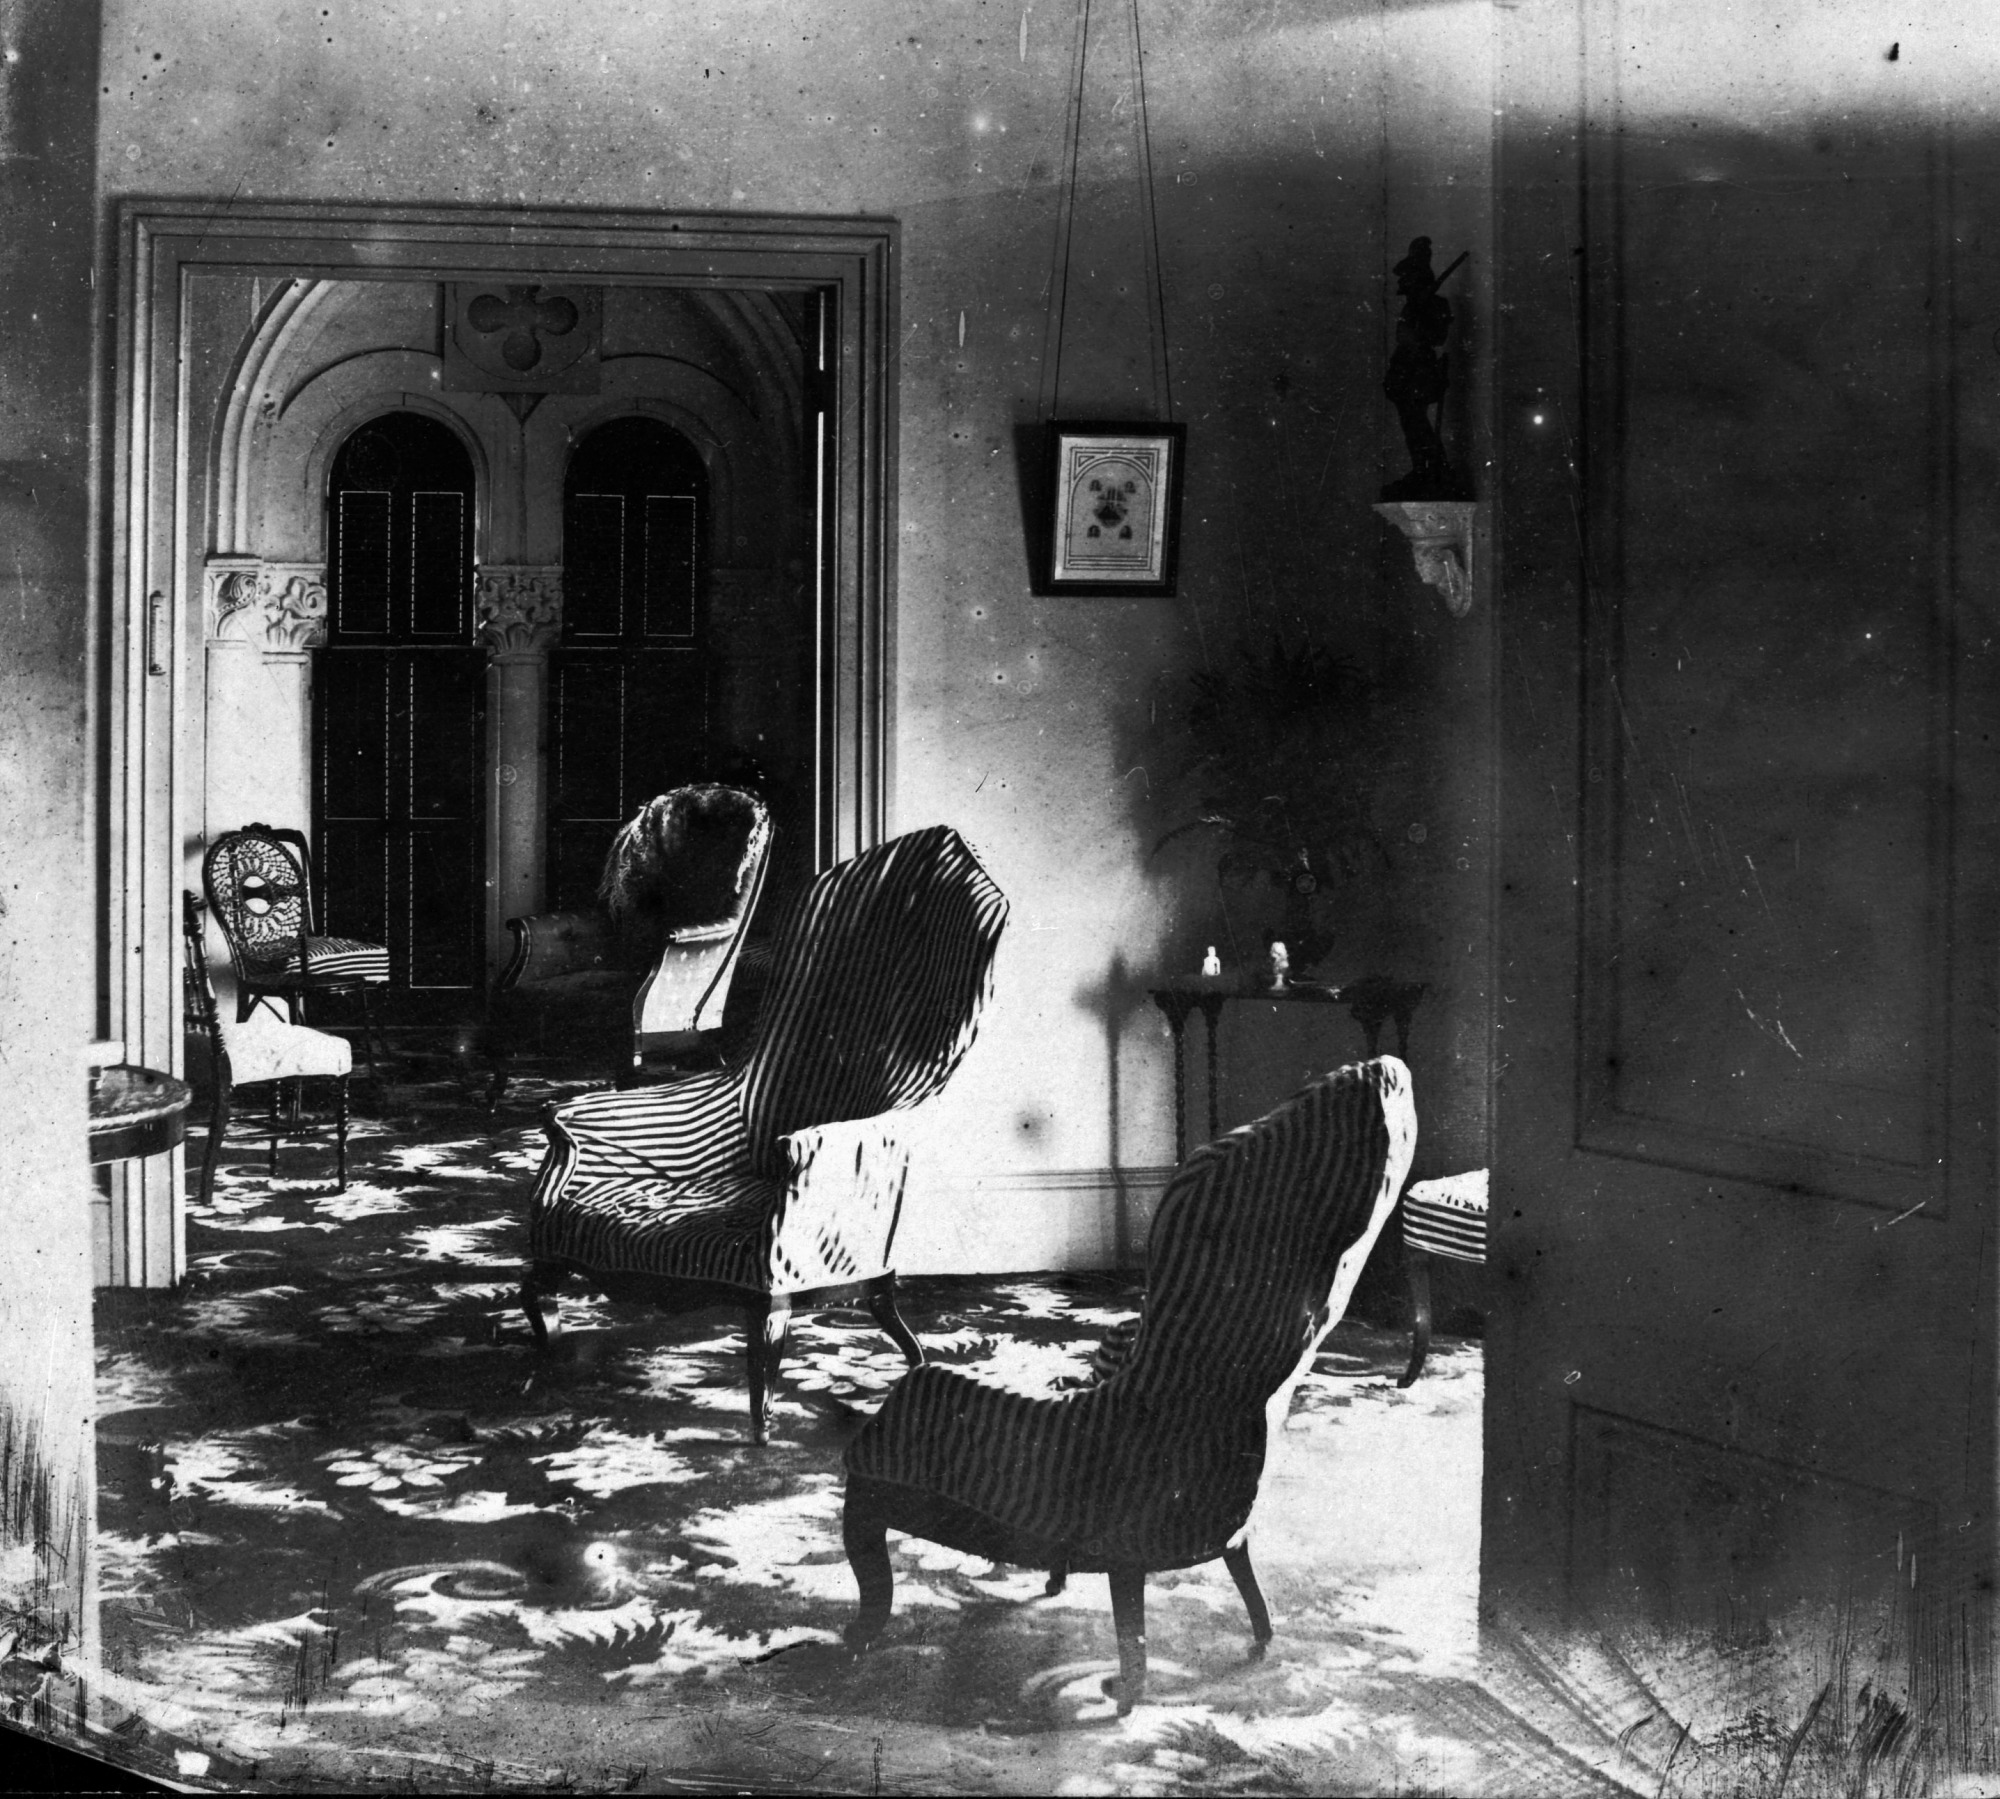 Image of Joseph Henry's apartments in the East Wing of the Smithsonian Institution Building, where the Philosophical Society of Washington met in its first years, by Titian Ramsey Peale, 1862. Smithsonian Institution Archives, negative number mah-x3253.